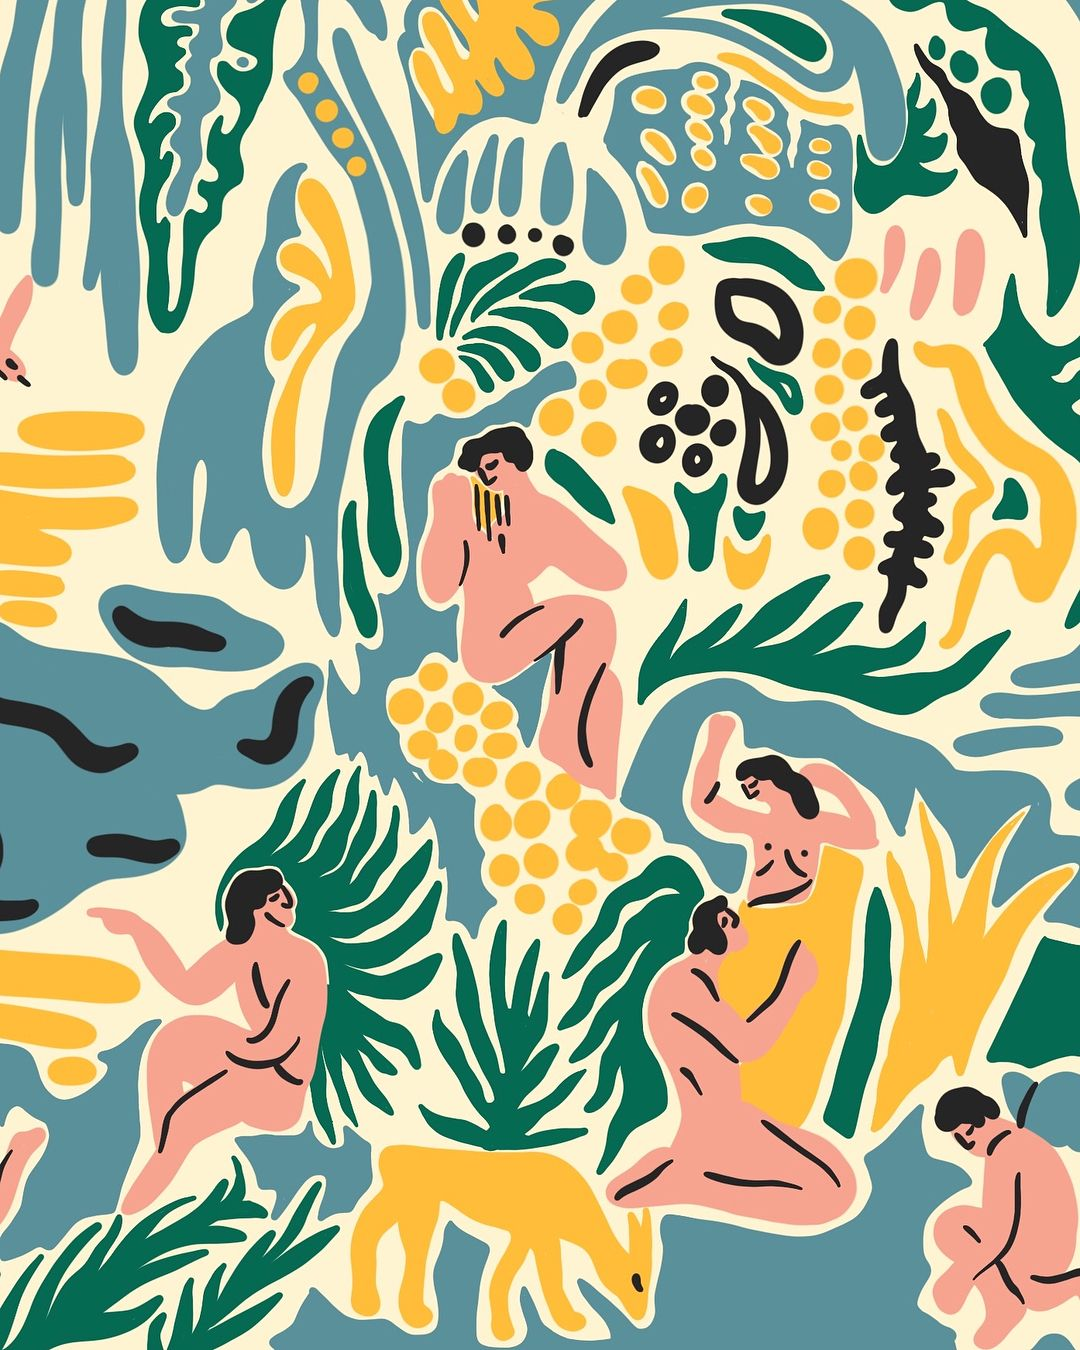 12 plants Illustration pattern ideas